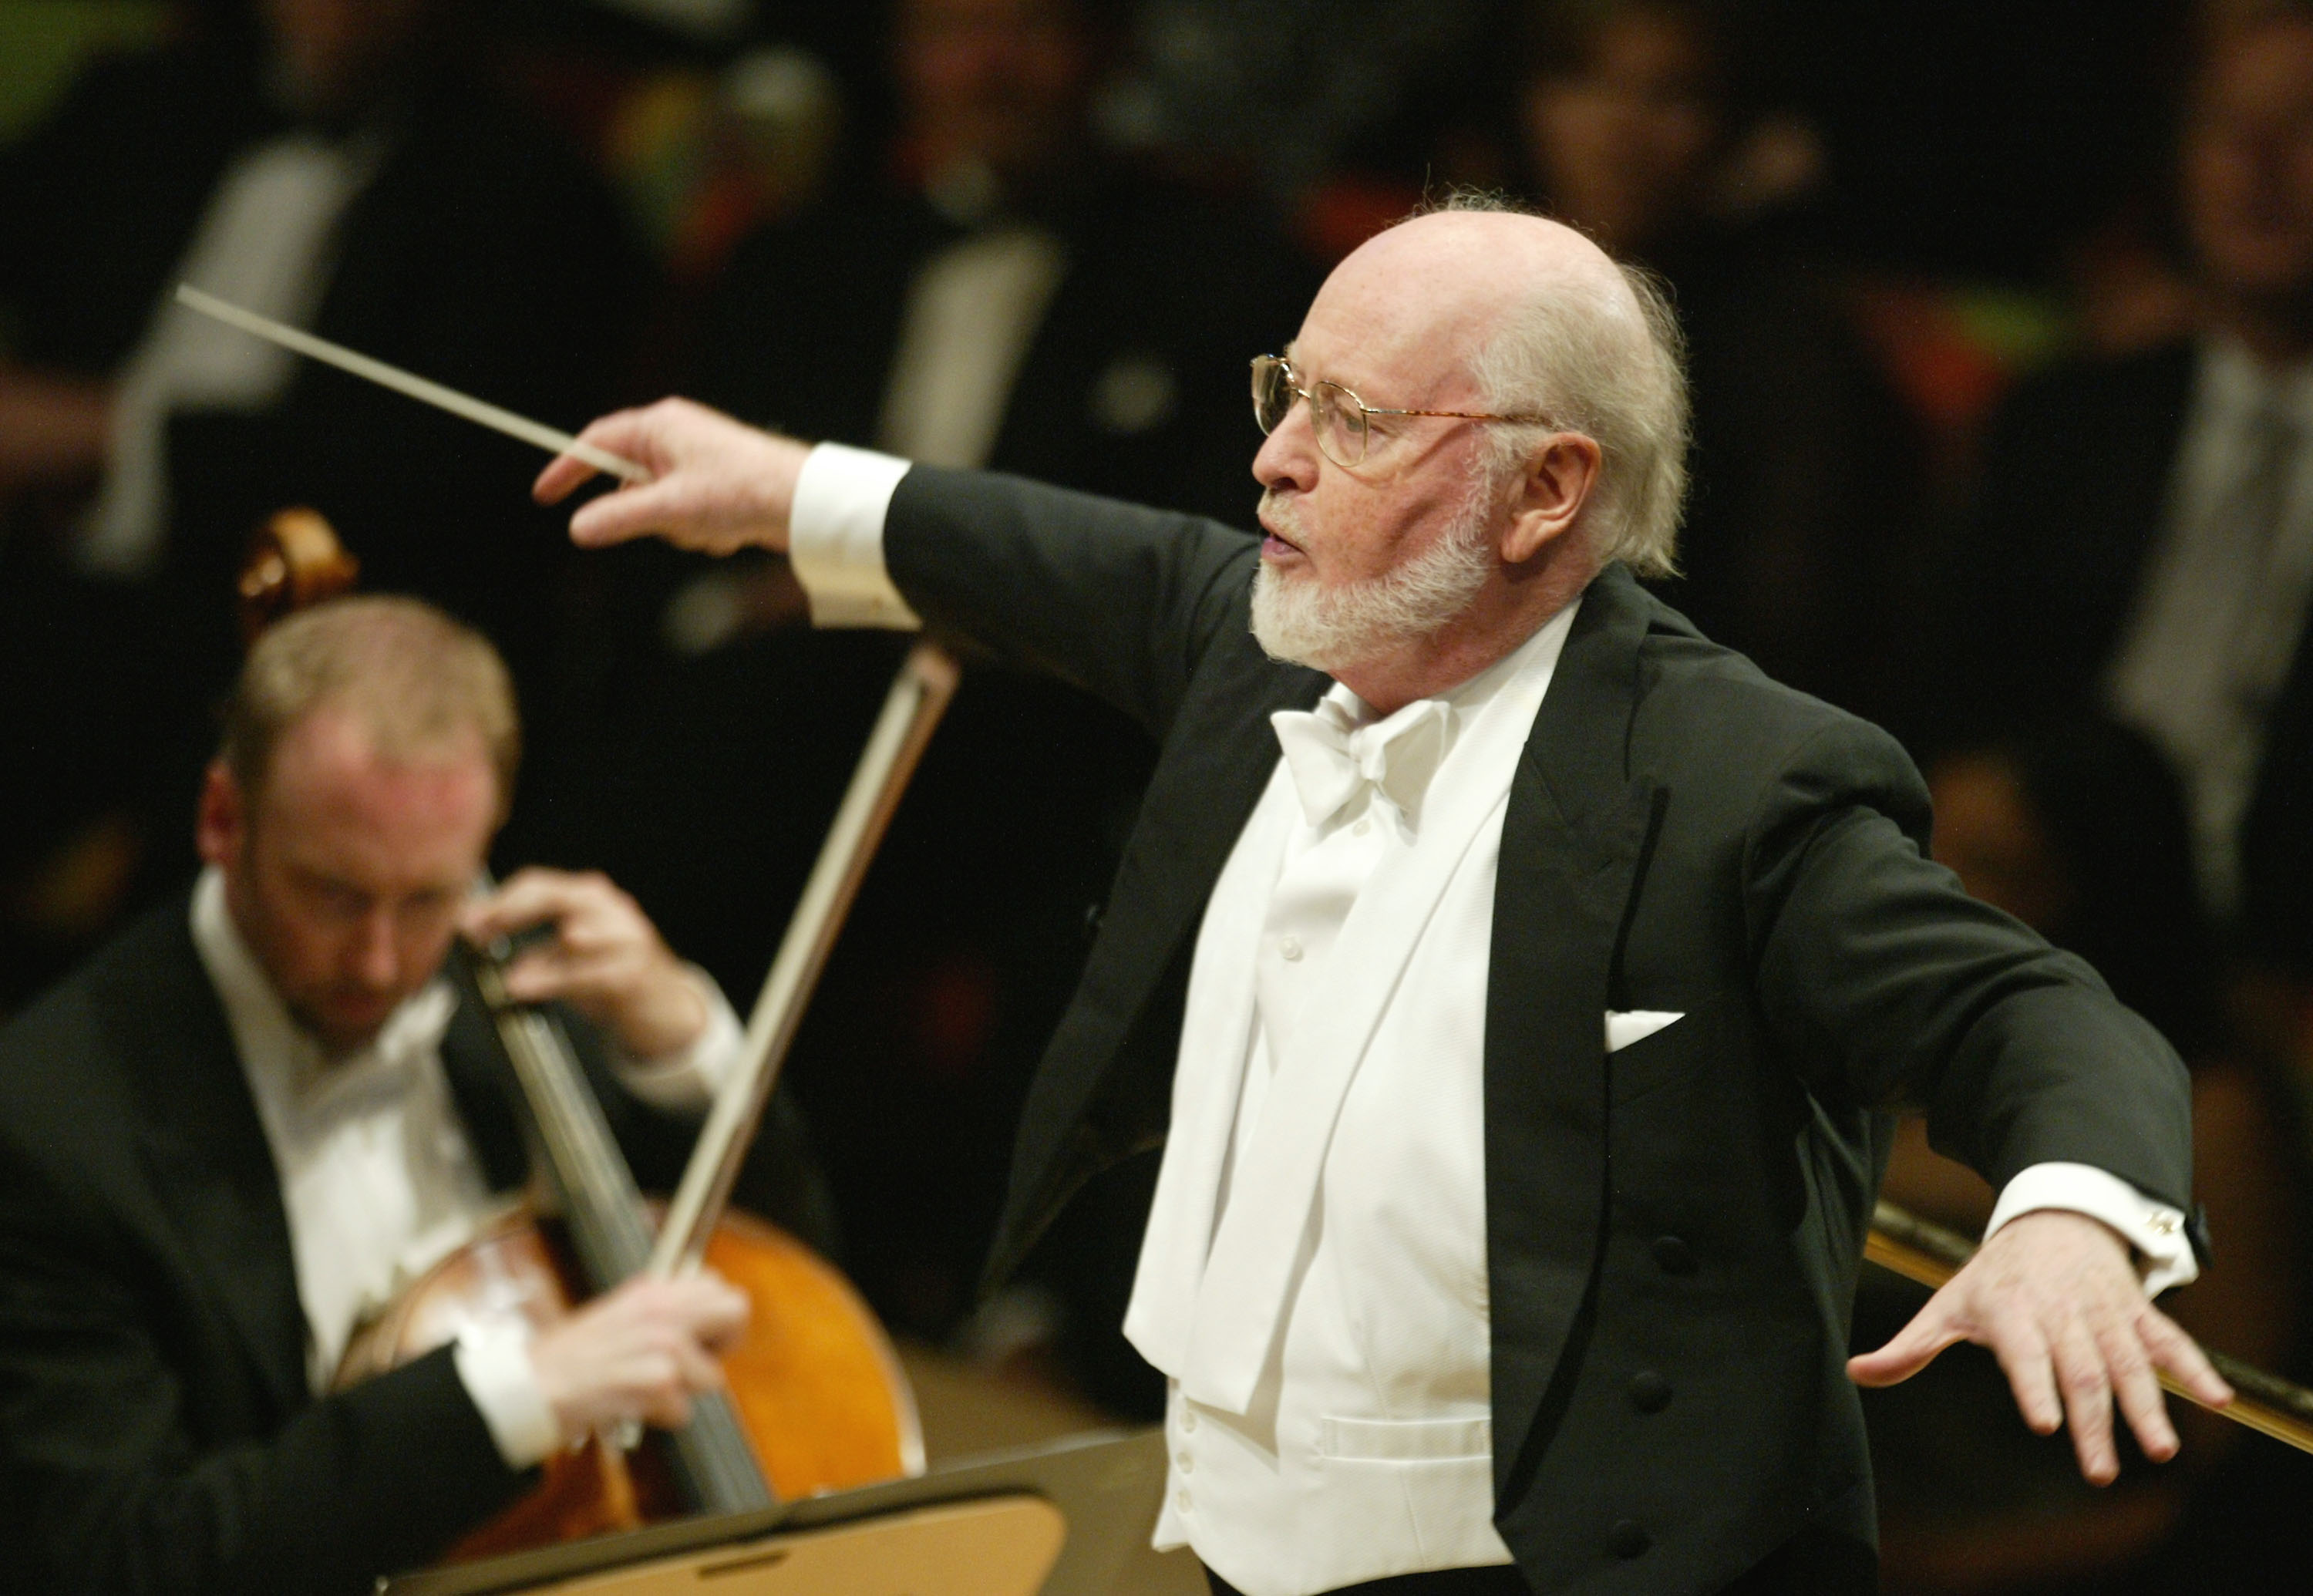 Composer John Williams at the Walt Disney Concert Hall opening gala, Oct. 25, 2003 in Los Angeles. (Carlo Allegri/Getty Images for LAPA)